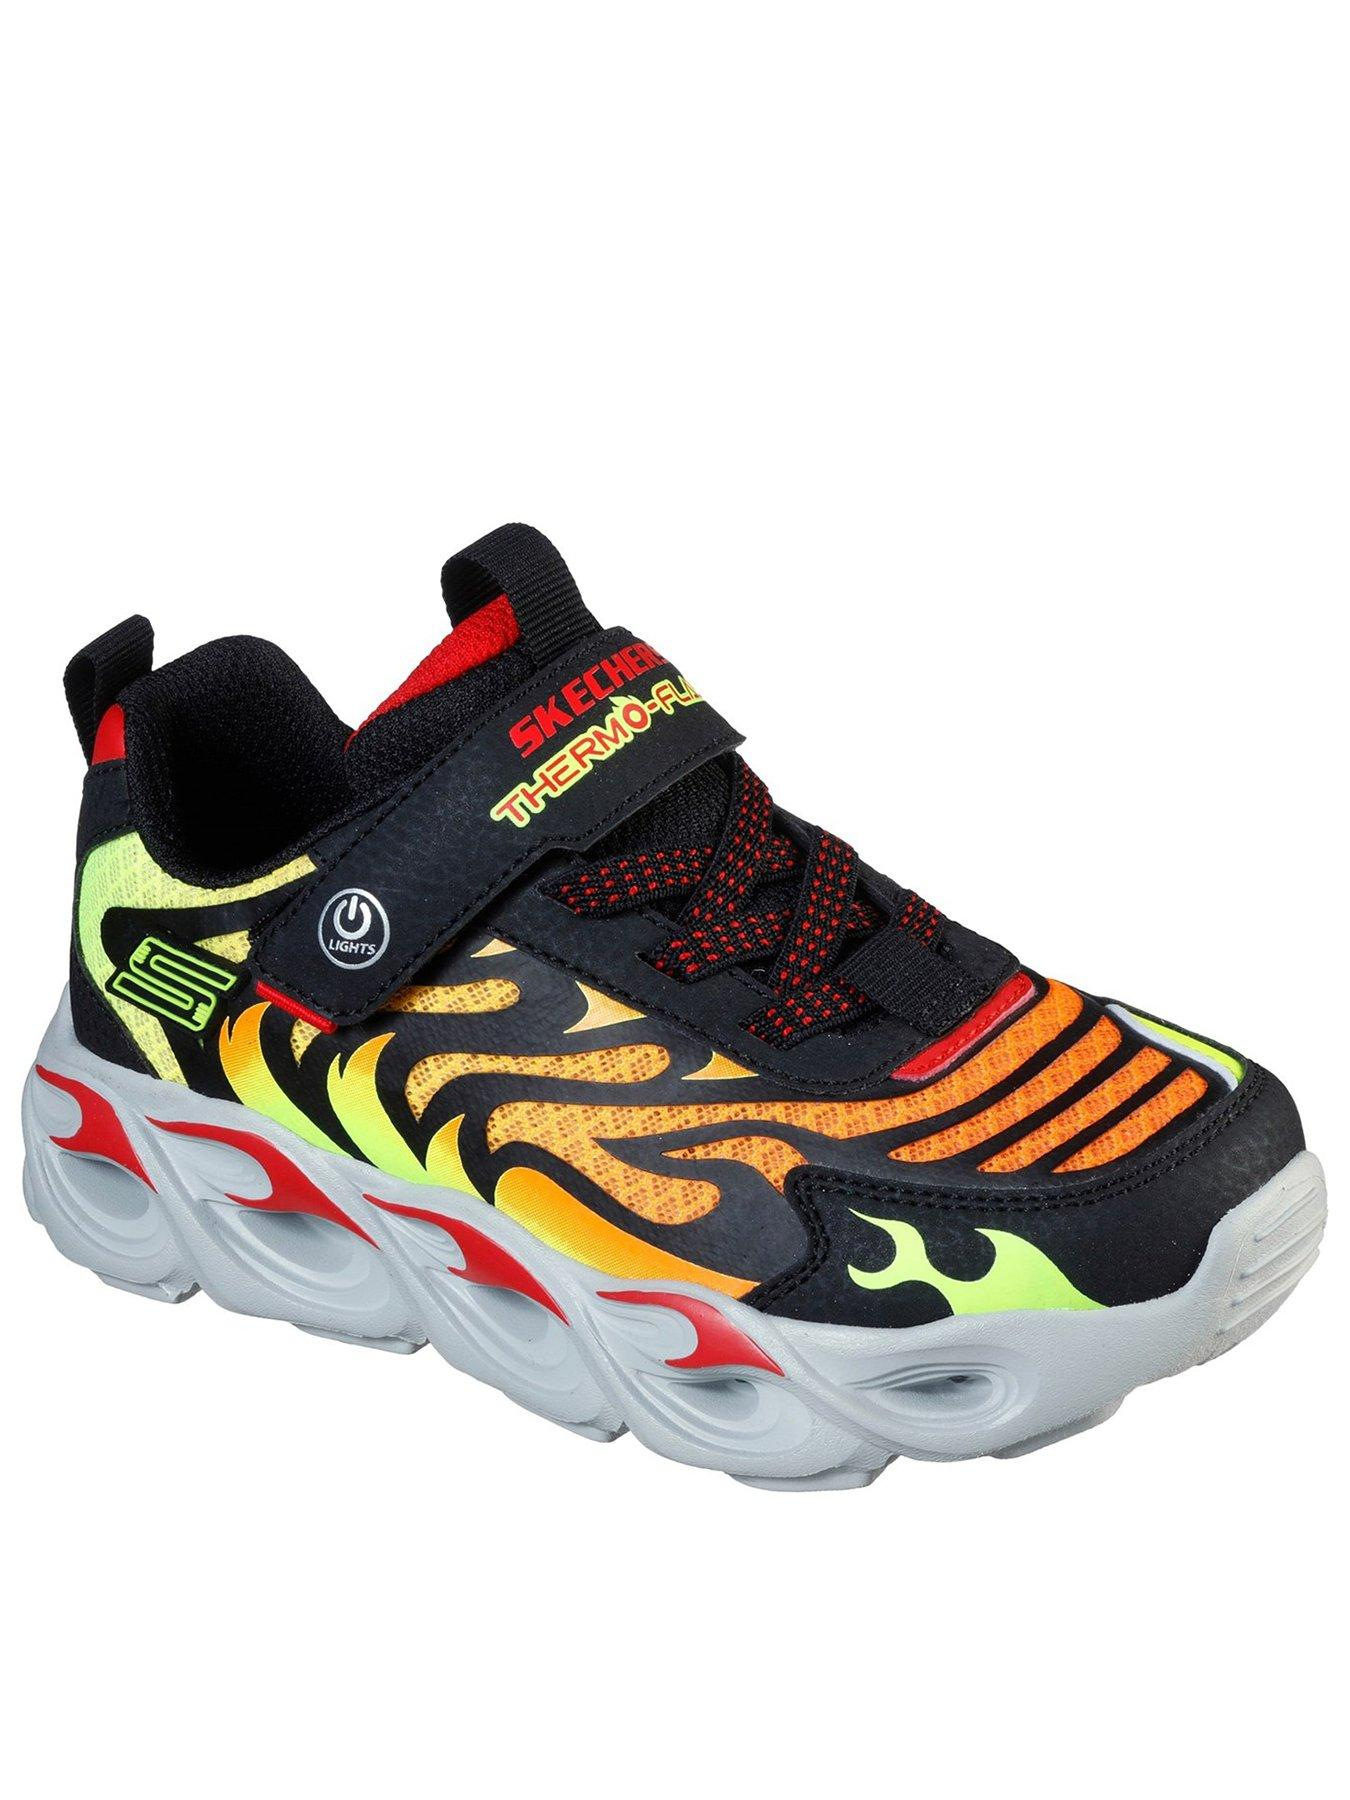 Kids Trainers | Branded Kids Trainers